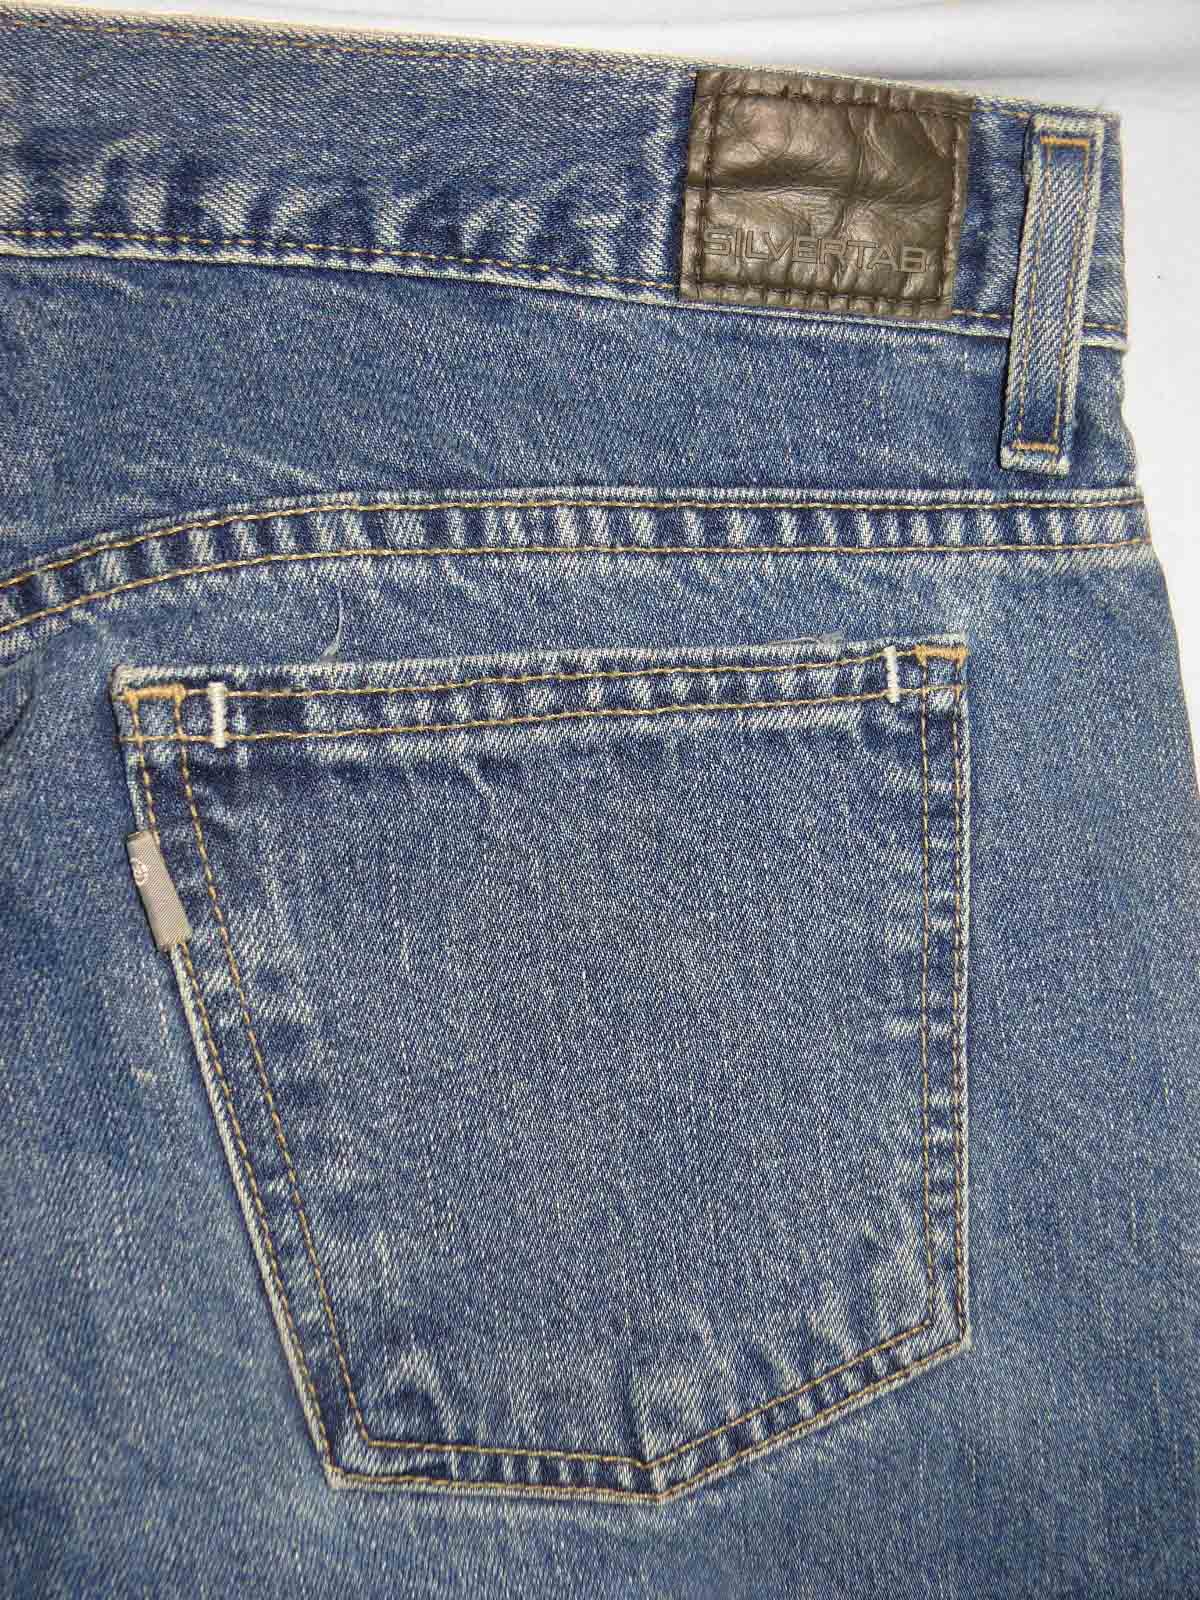 ◆ Silver Tab Jeans ◆